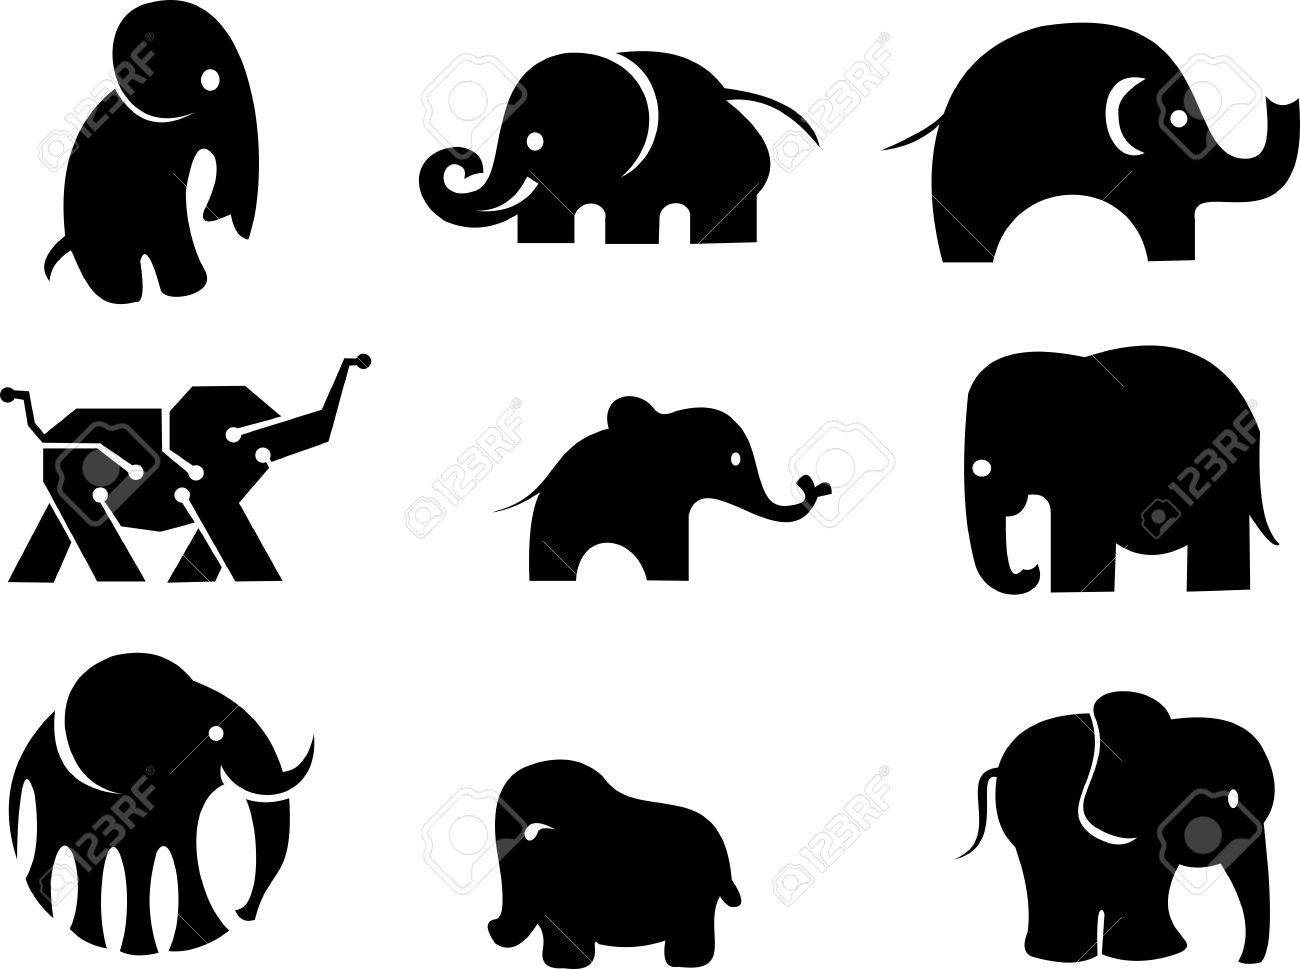 1300x969 Stock Logo Elephant Silhouette Royalty Free Cliparts, Vectors, And